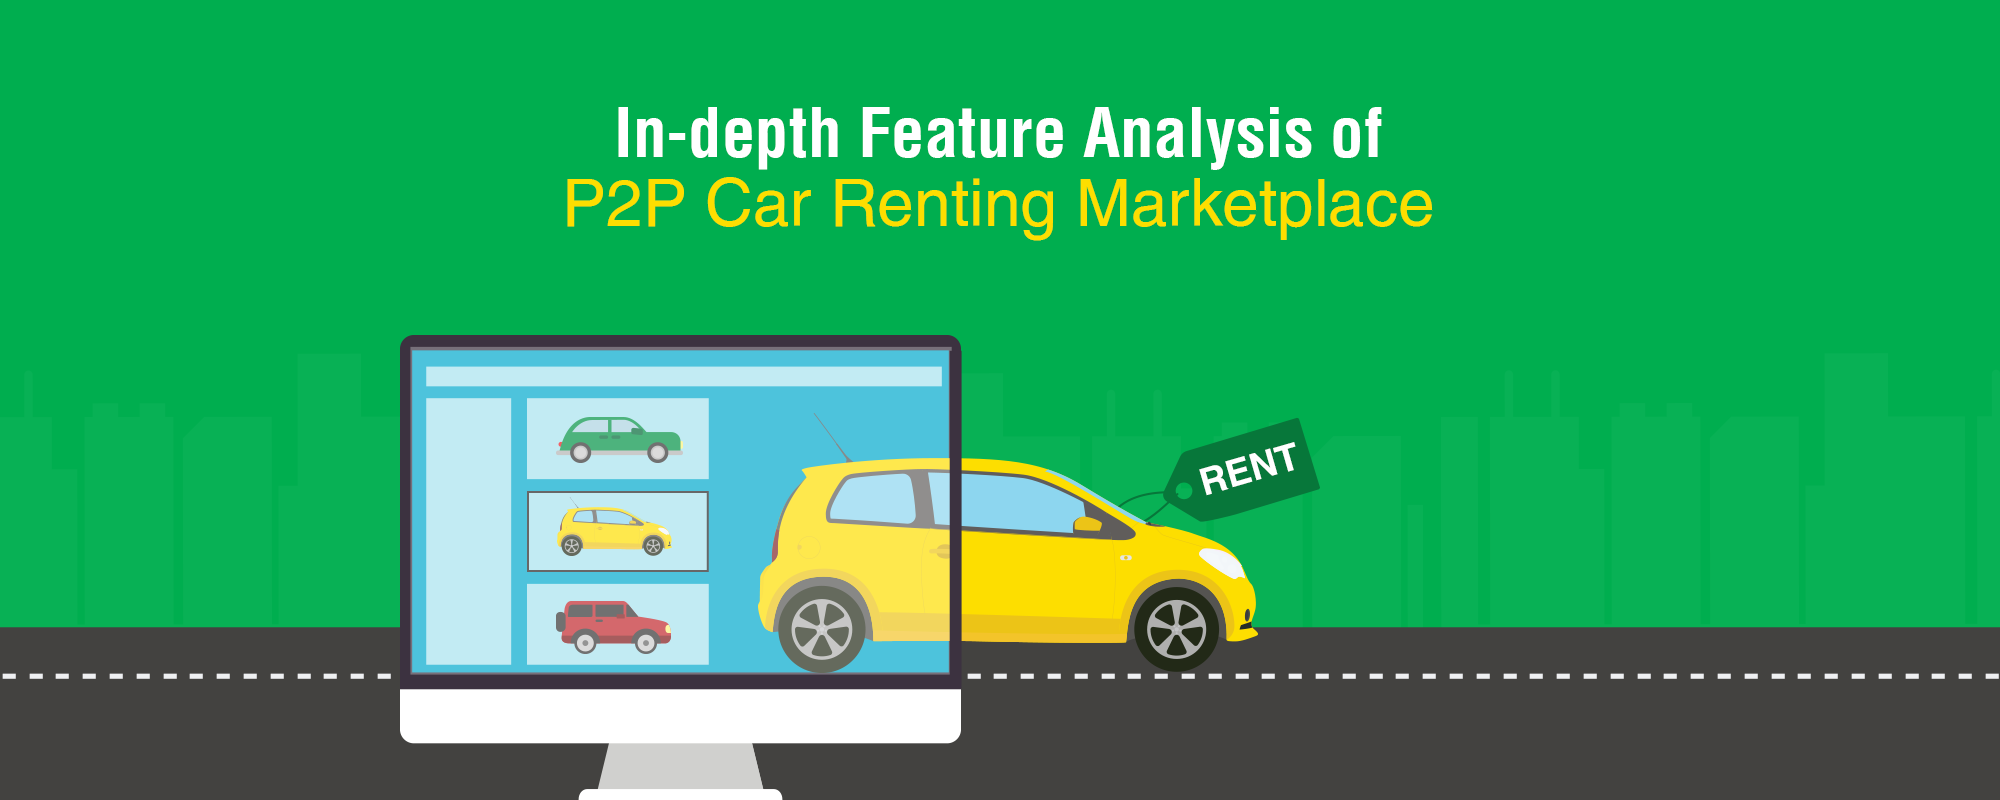 Peer-to-Peer Car Rental Marketplace Business Model and Essential Website Features